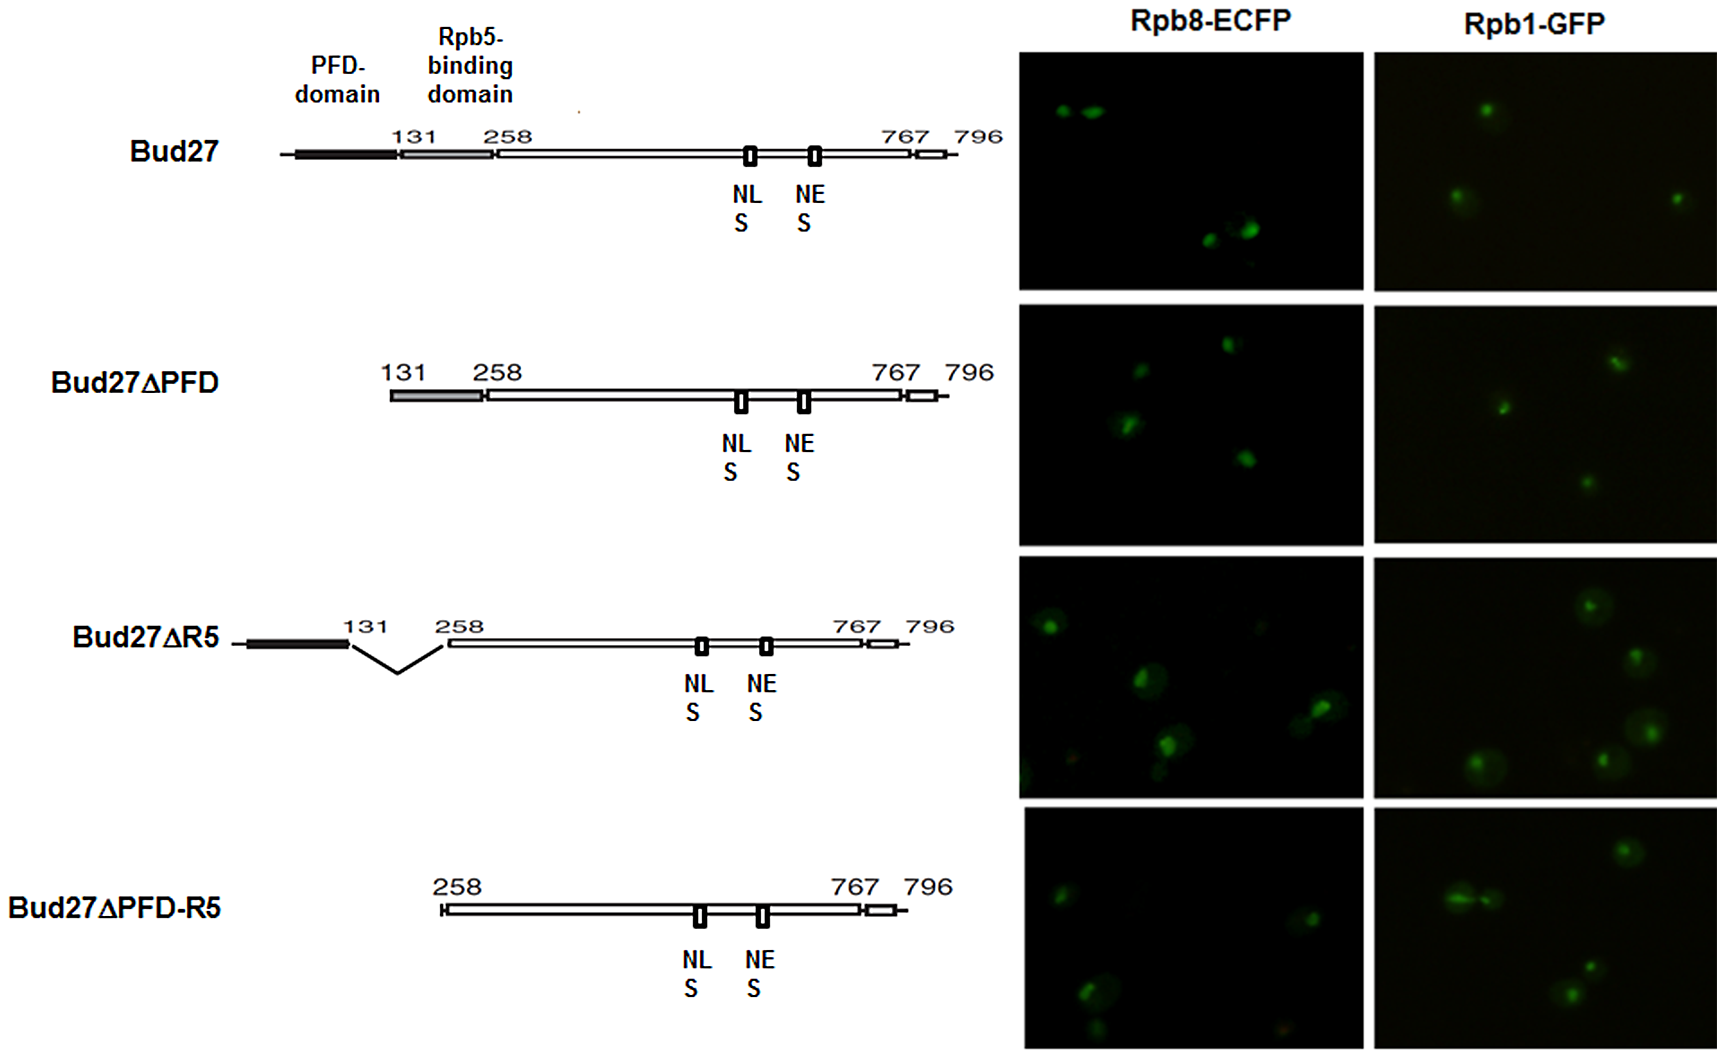 PFD, Rpb5-binding domains, or both are dispensable for RNA pol I, II, and III nuclear localization.